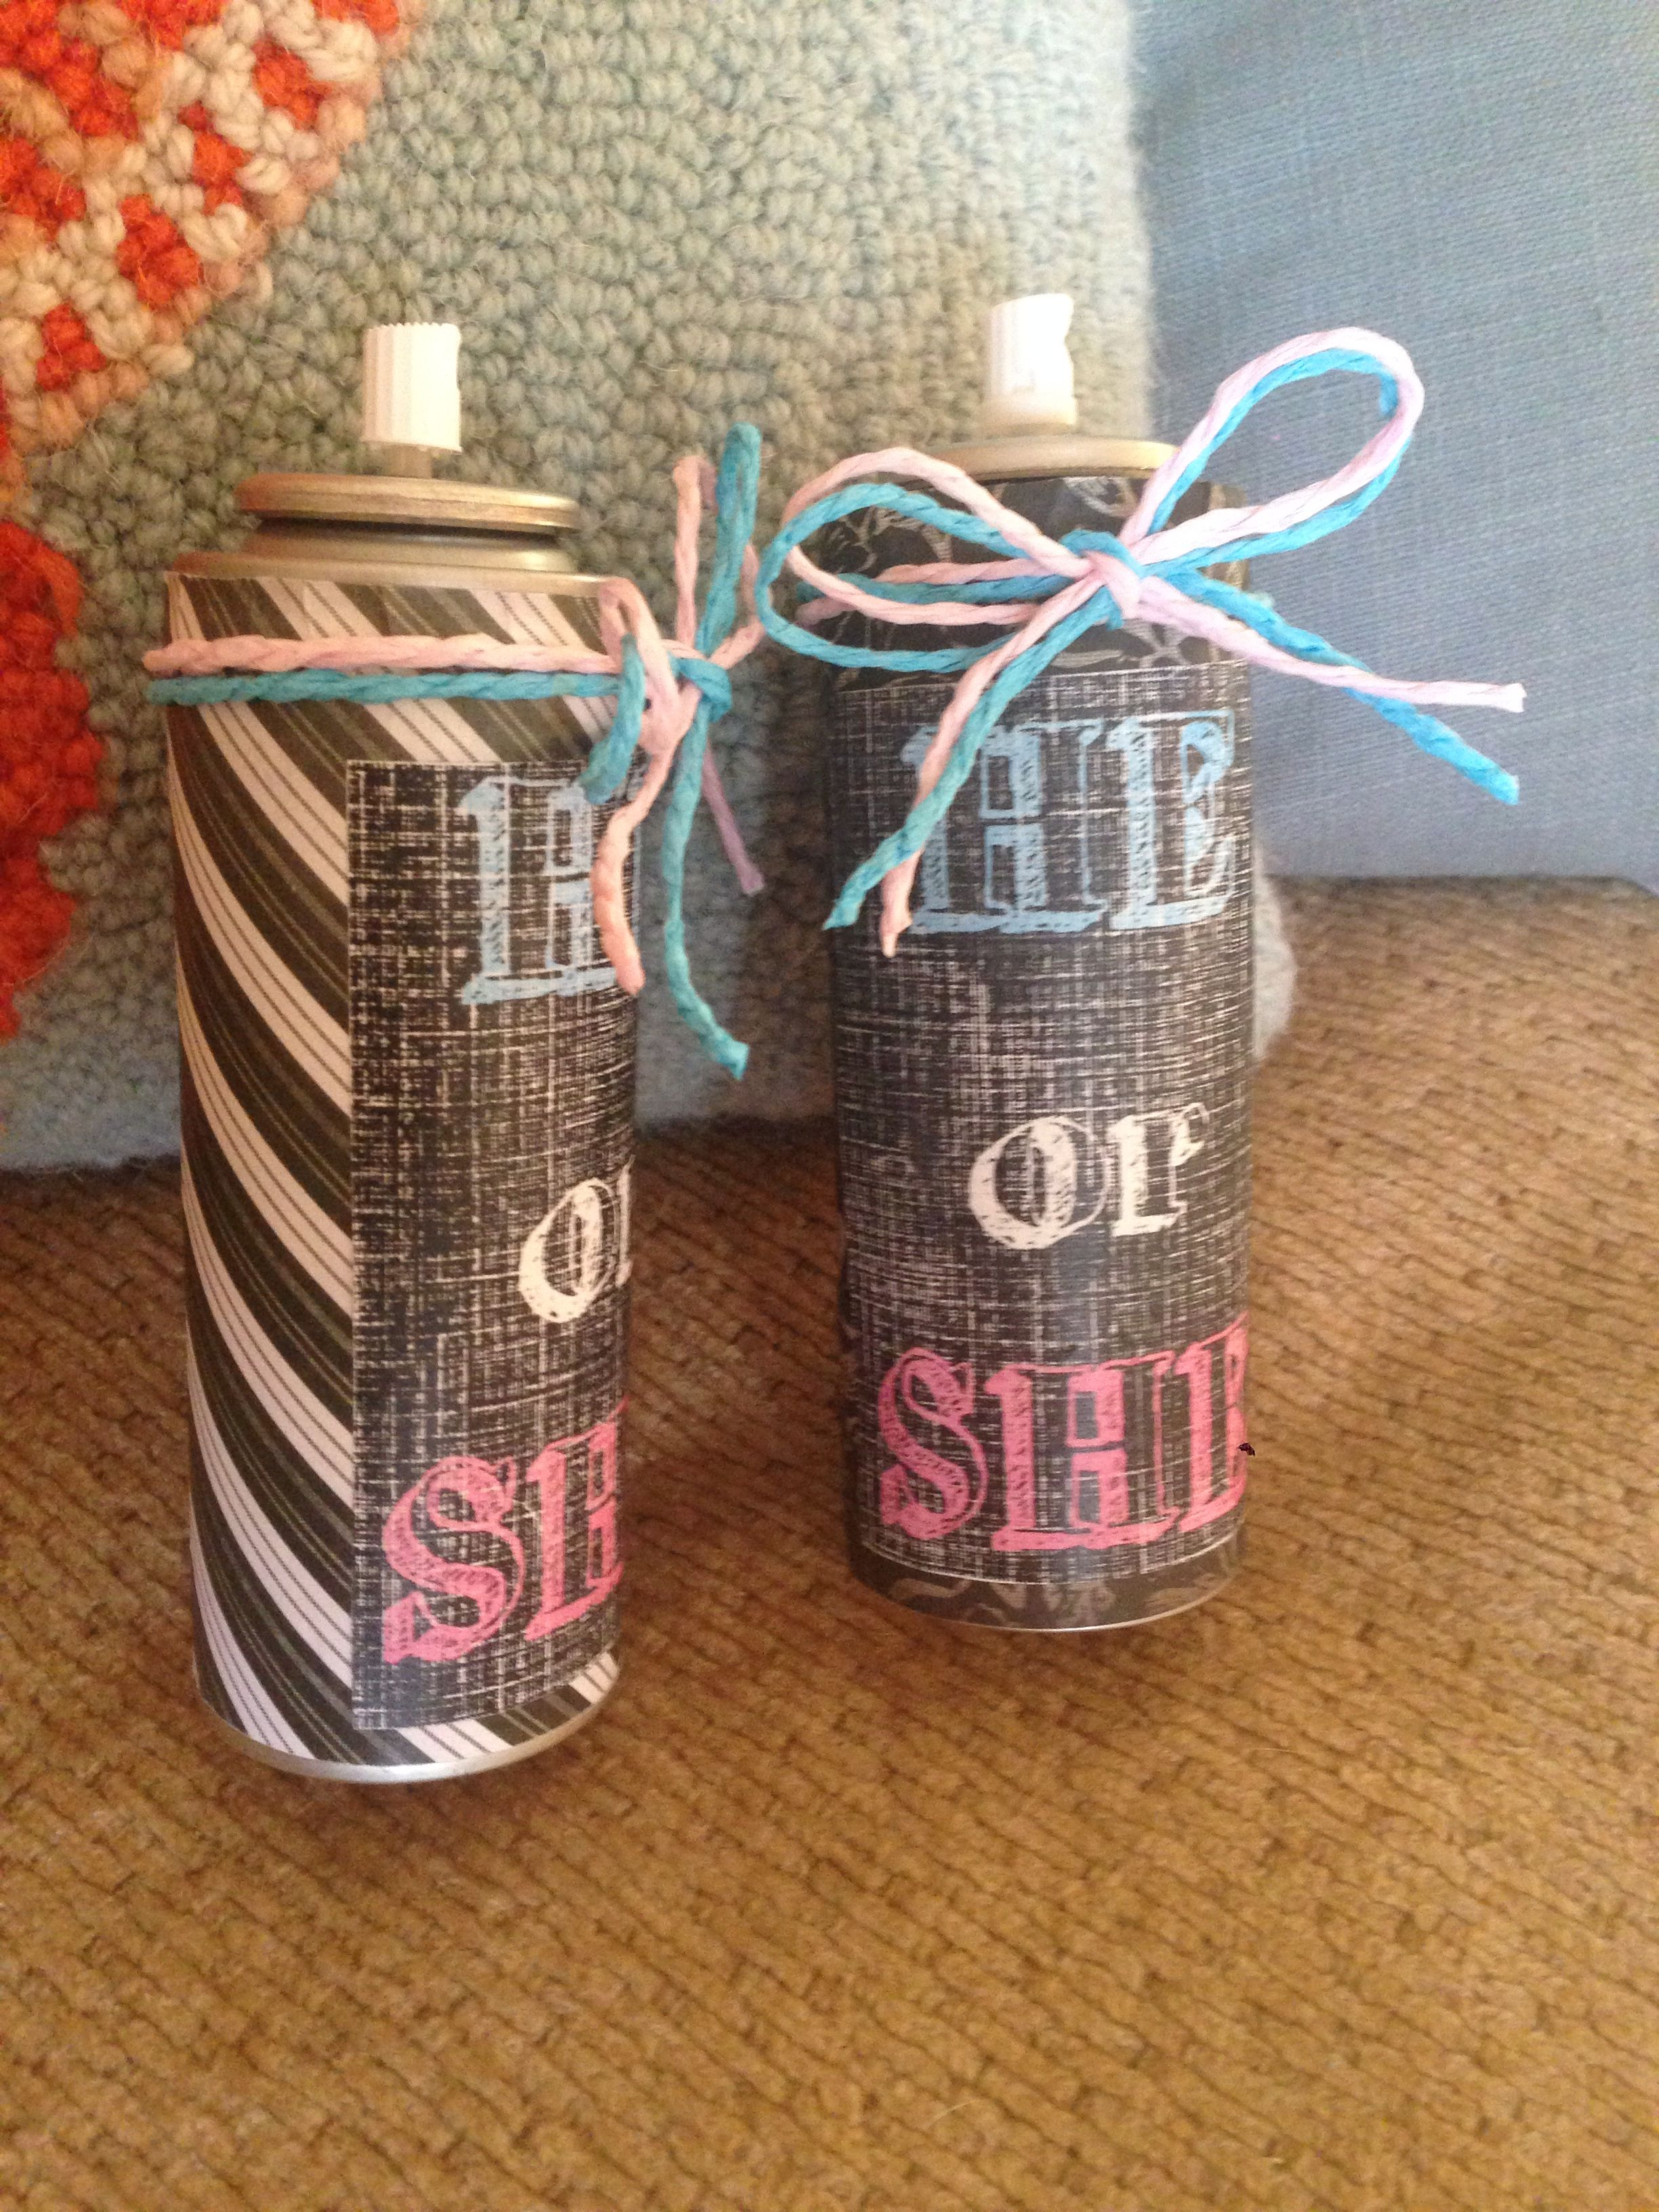 prepping the silly string for the upcoming gender reveal